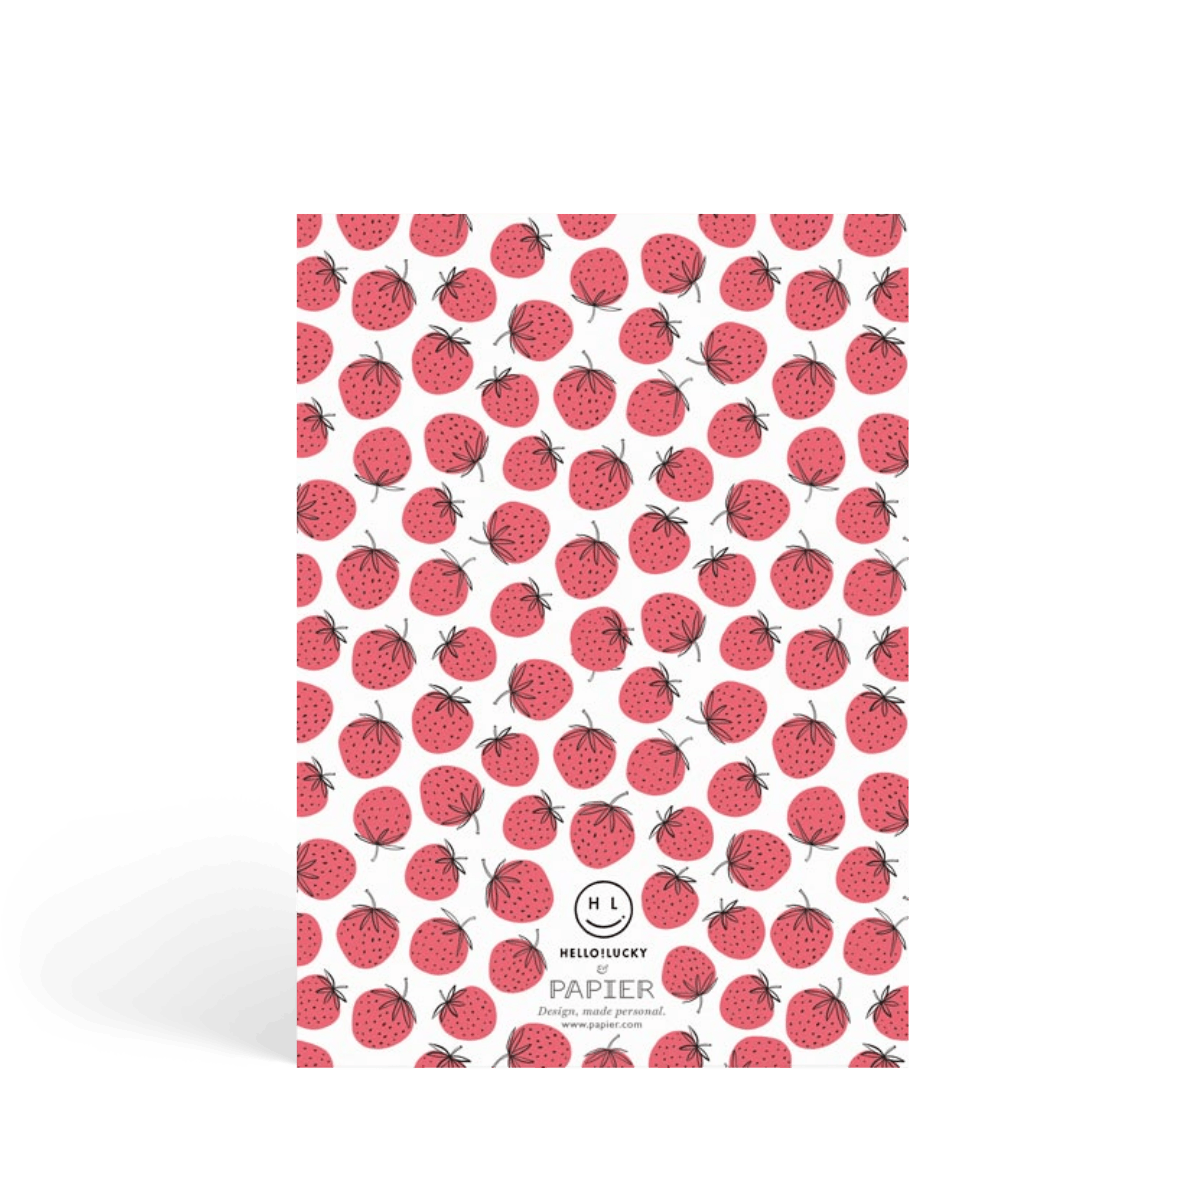 Https%3a%2f%2fwww.papier.com%2fproduct image%2f54415%2f5%2fstrawberries 13084 back 1556892377.png?ixlib=rb 1.1